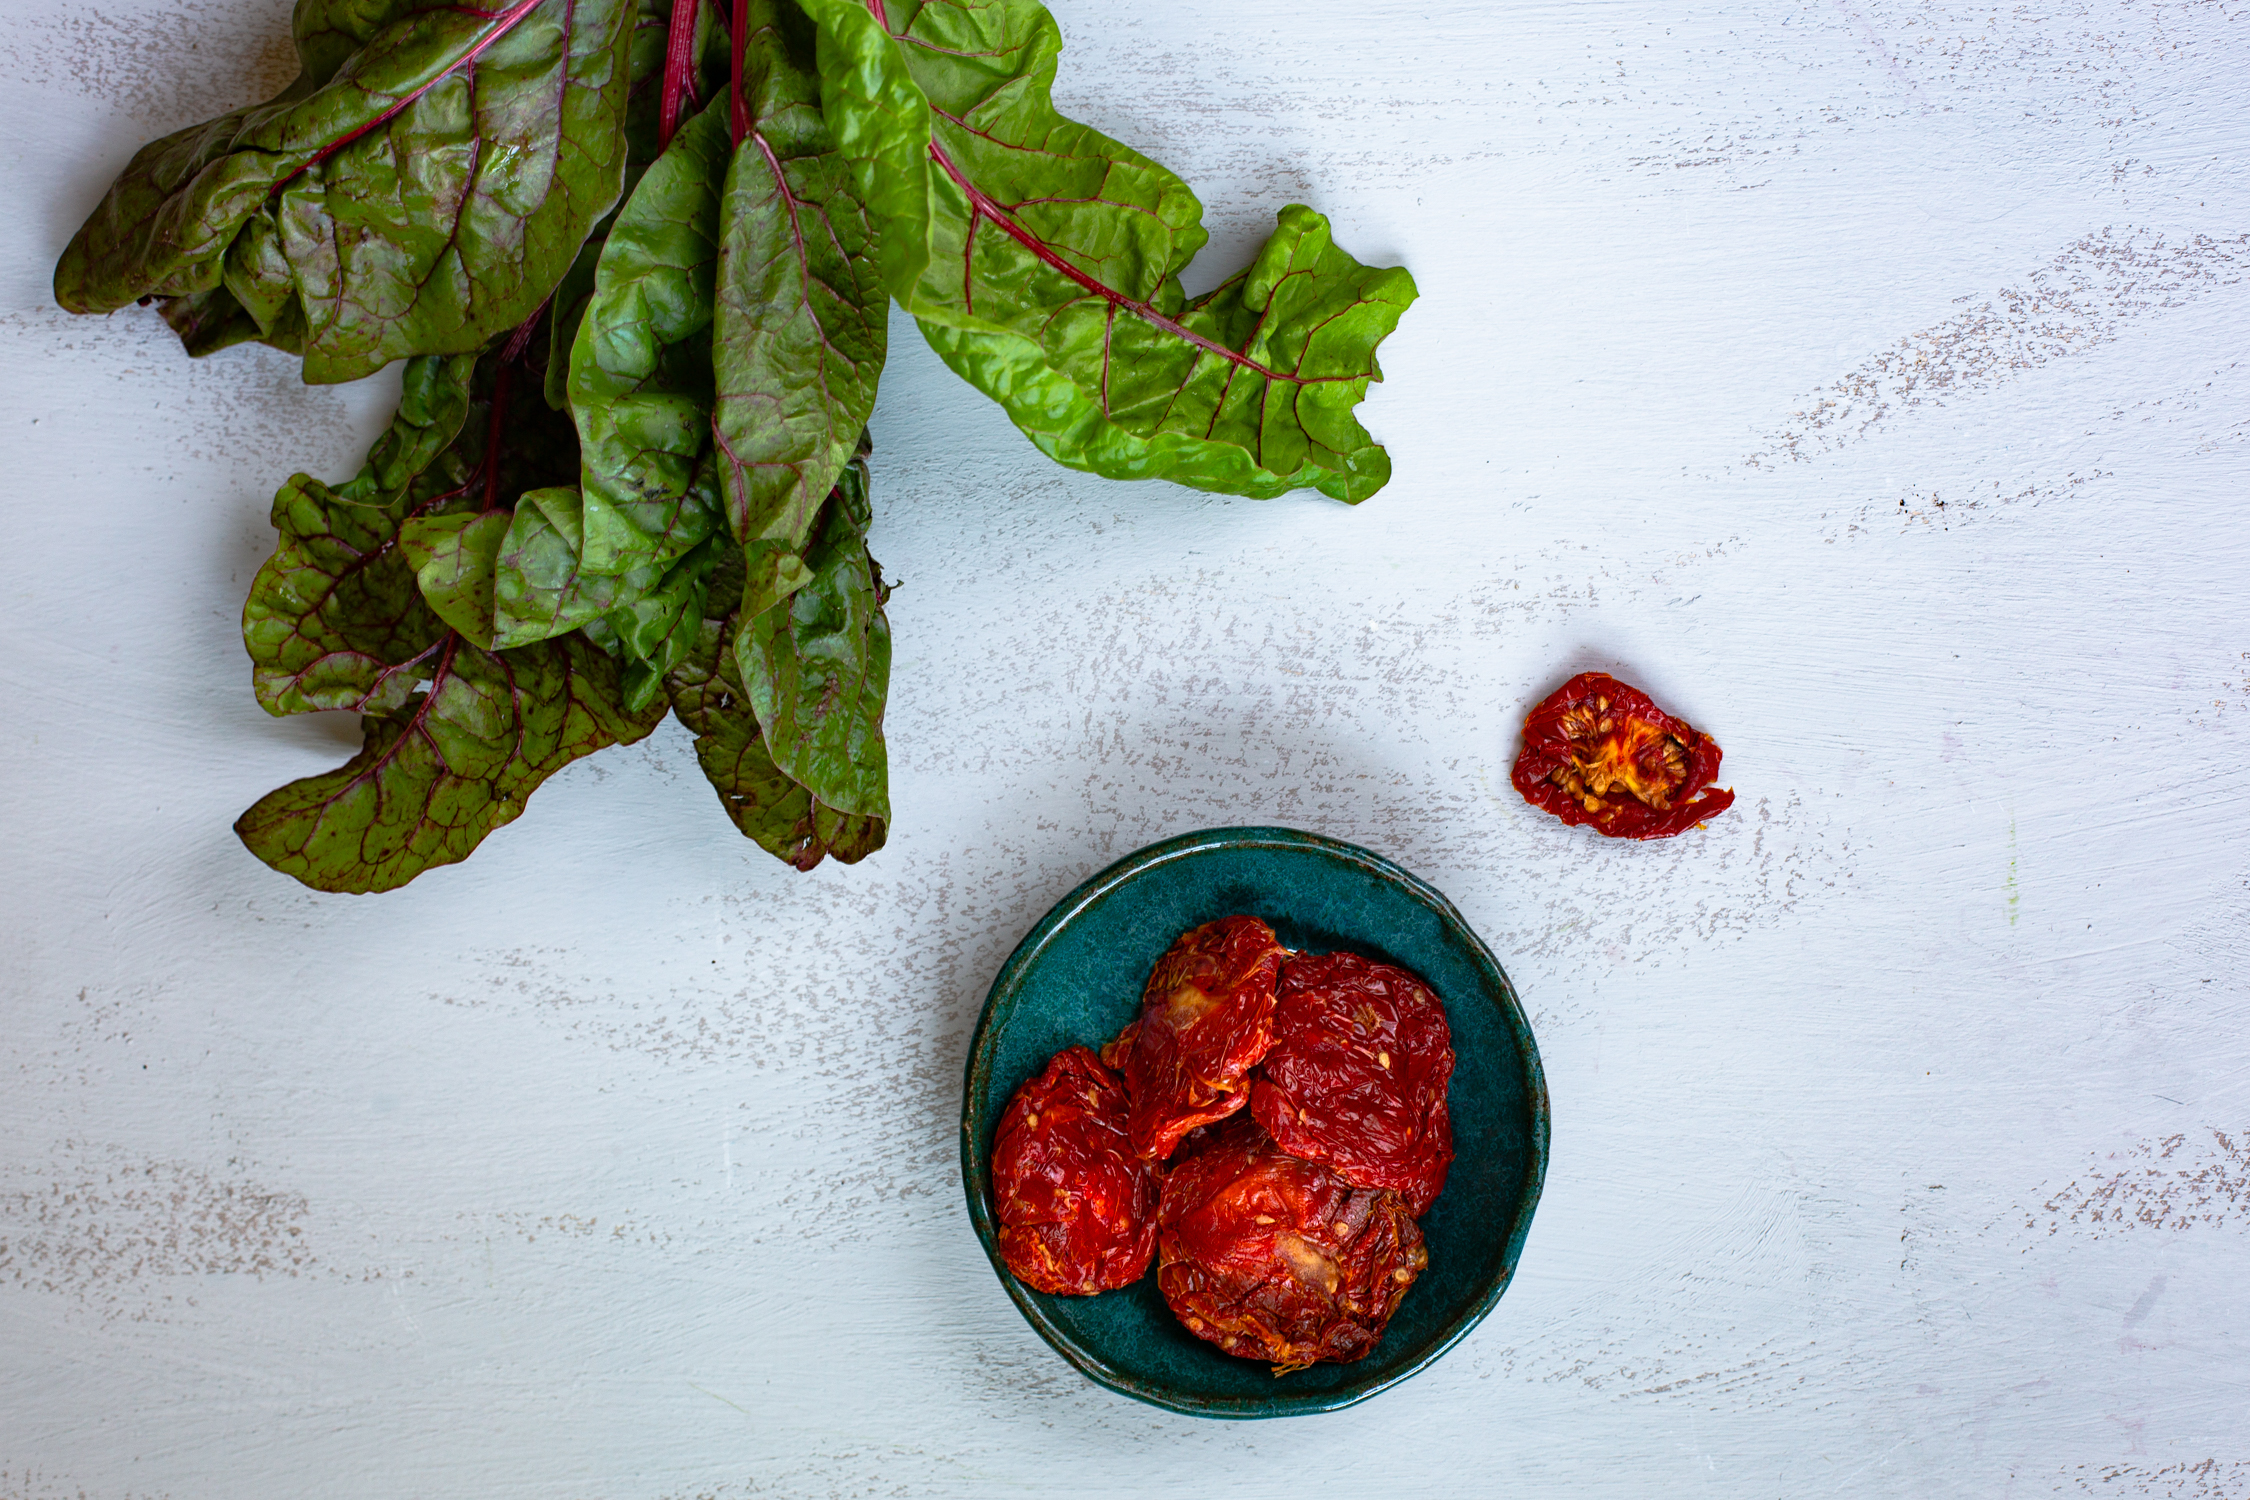 Swiss chard and Mallorcan semi-dried tomatoes